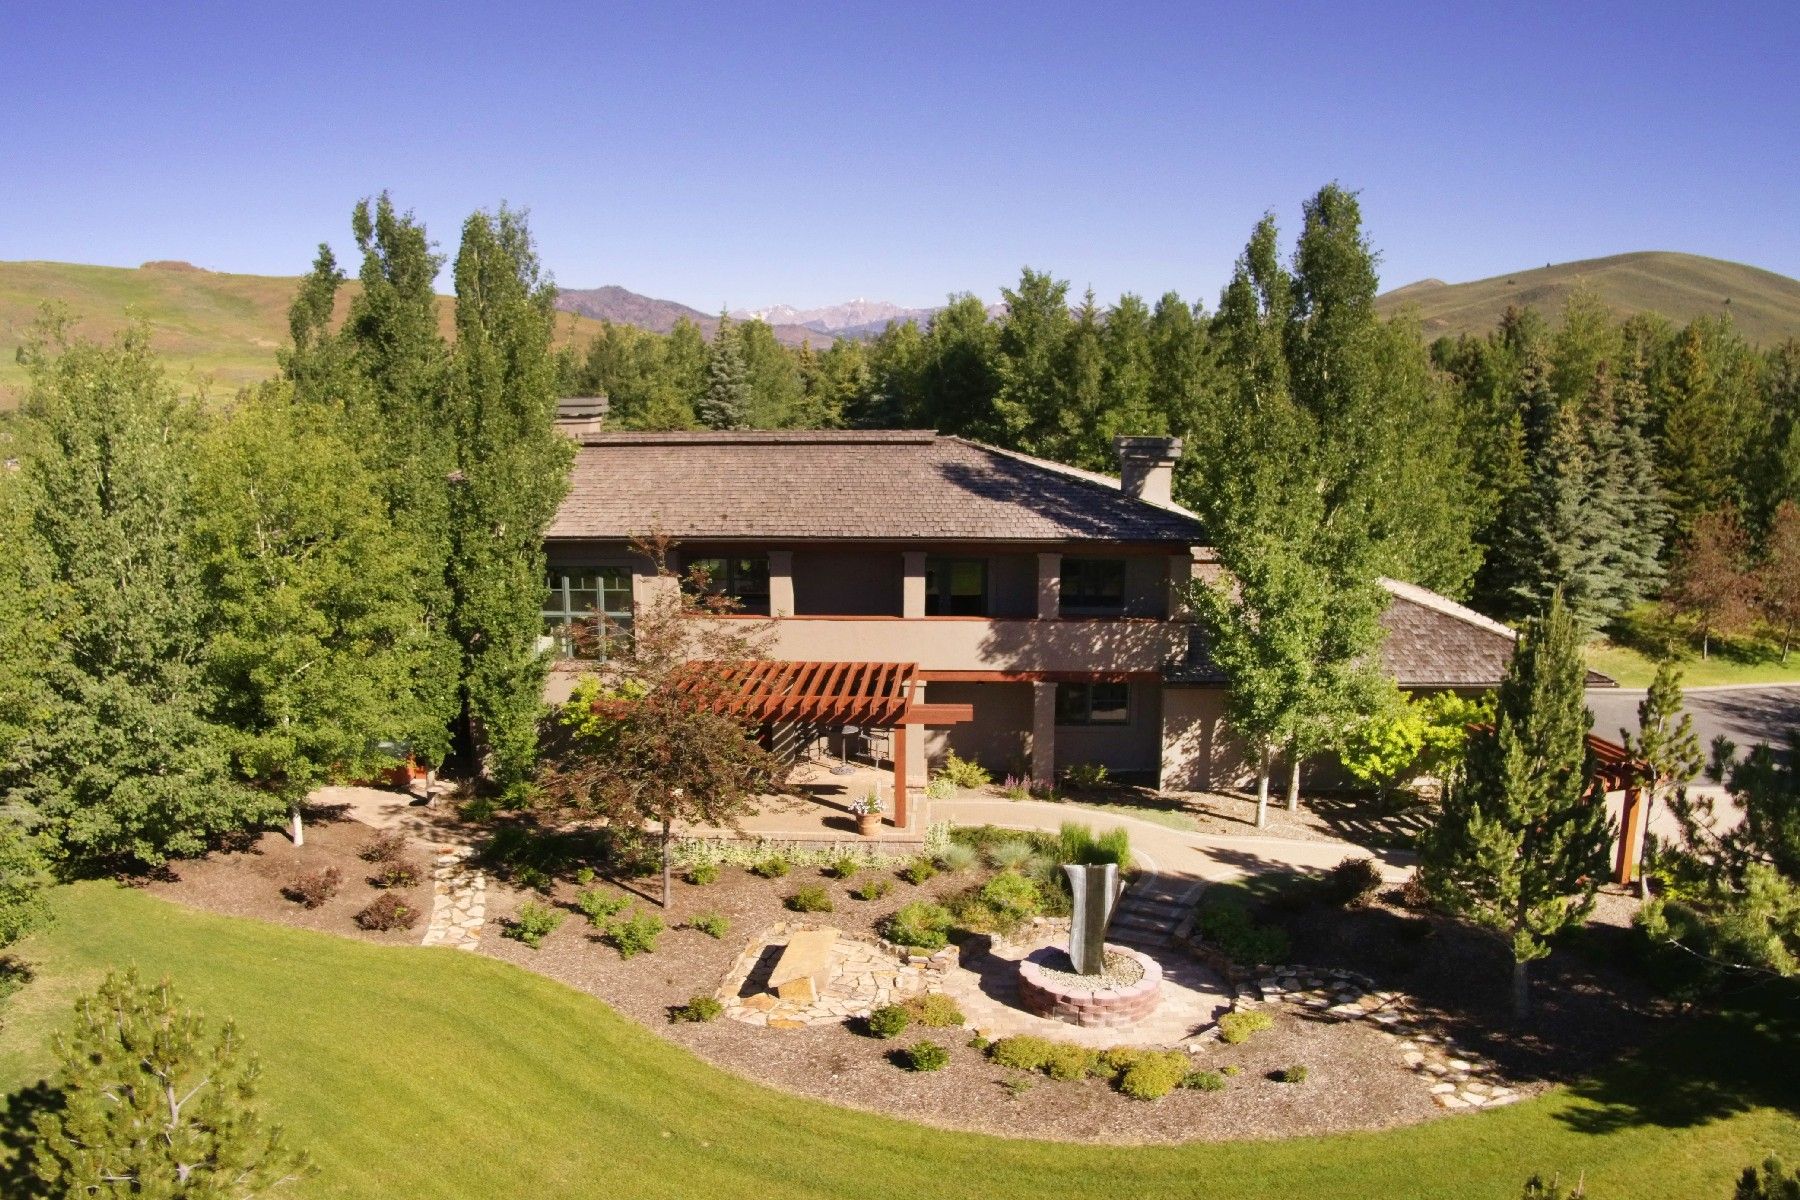 Single Family Home for Active at Mountain Contemporary 115 Highlands Dr Sun Valley, Idaho 83353 United States